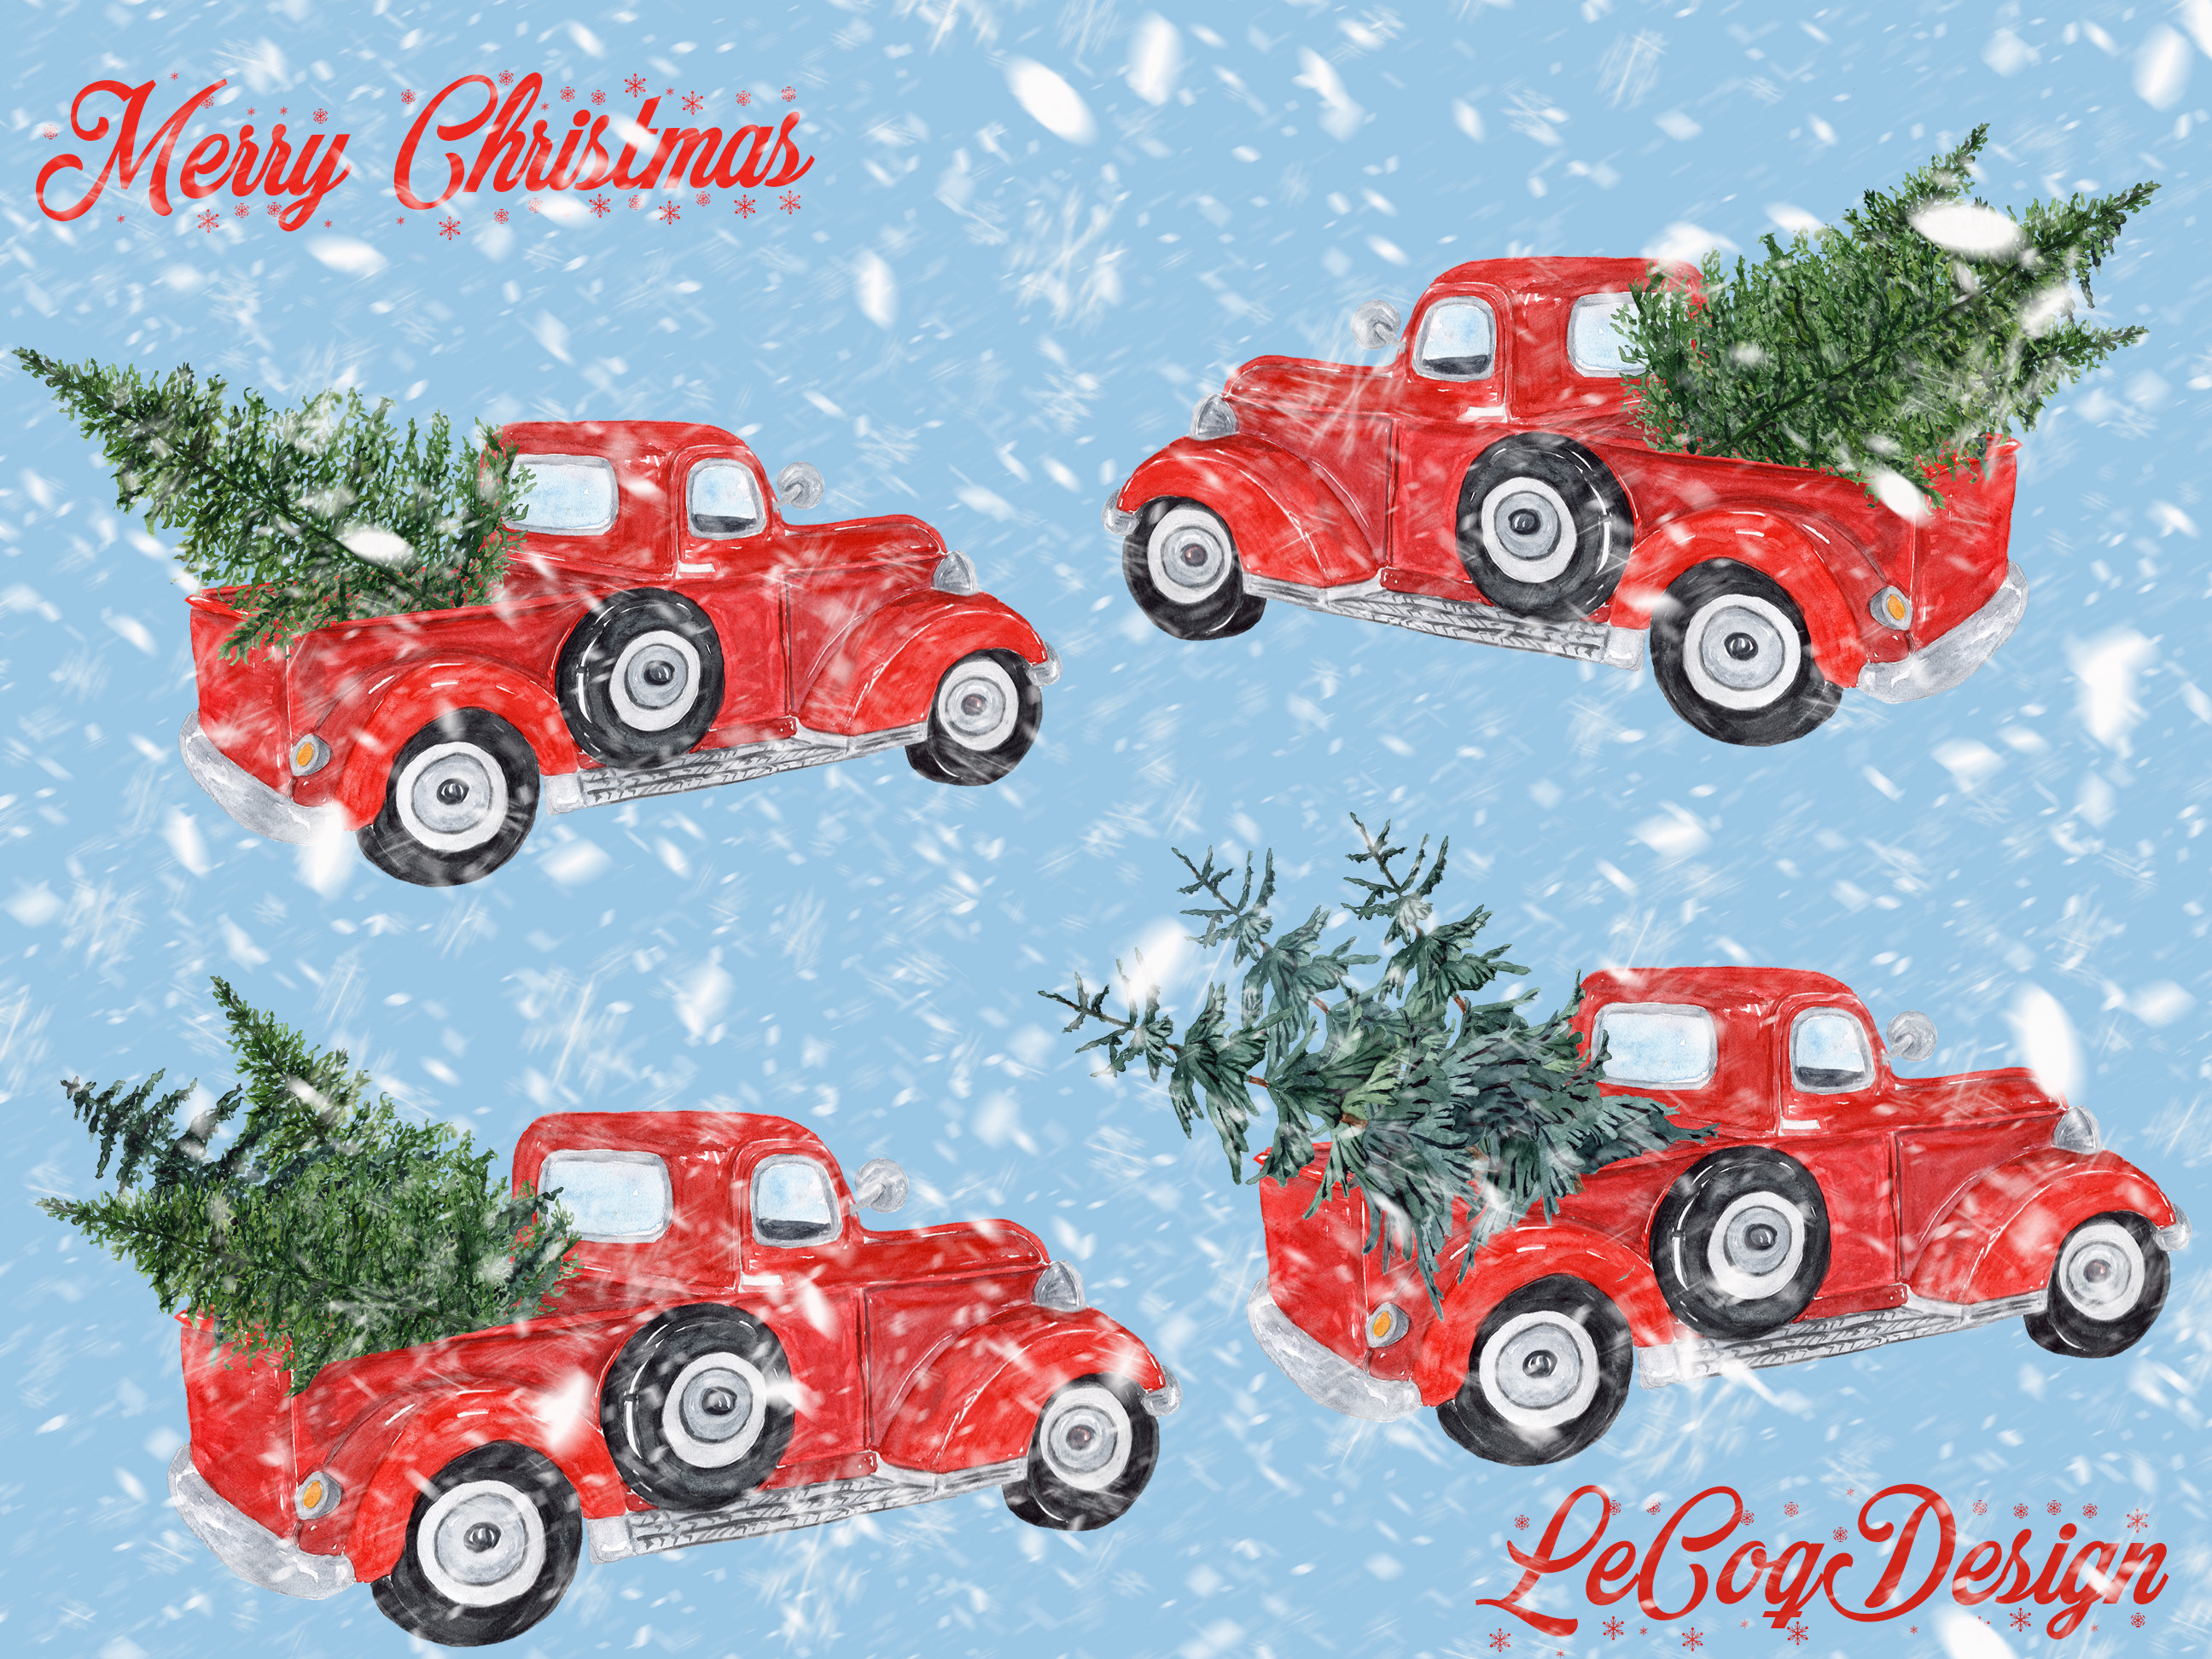 Watercolor Christmas clipart example image 5